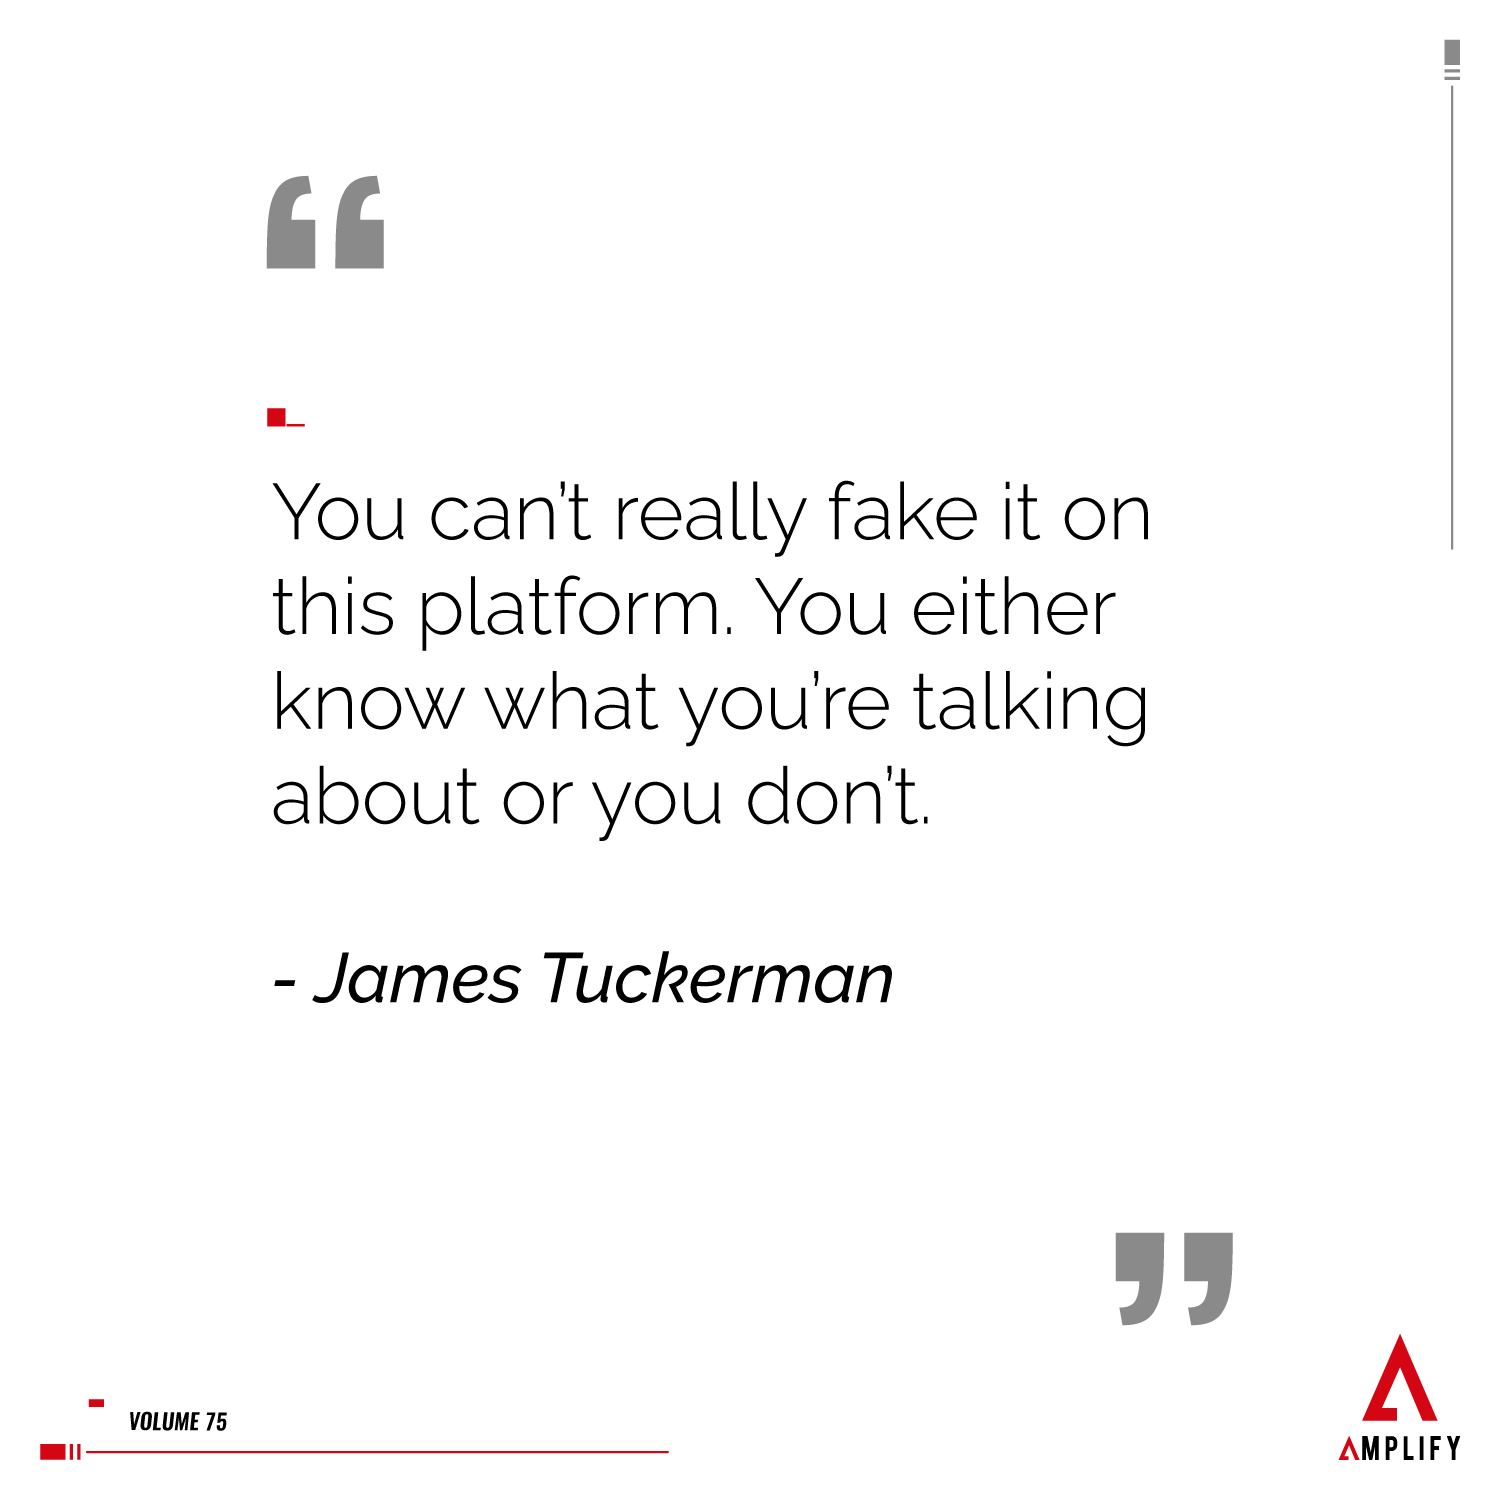 """decorative image with the quote """"You can't really fake it on this platform. You either know what you're talking about or you don't."""" by James Tuckerman"""